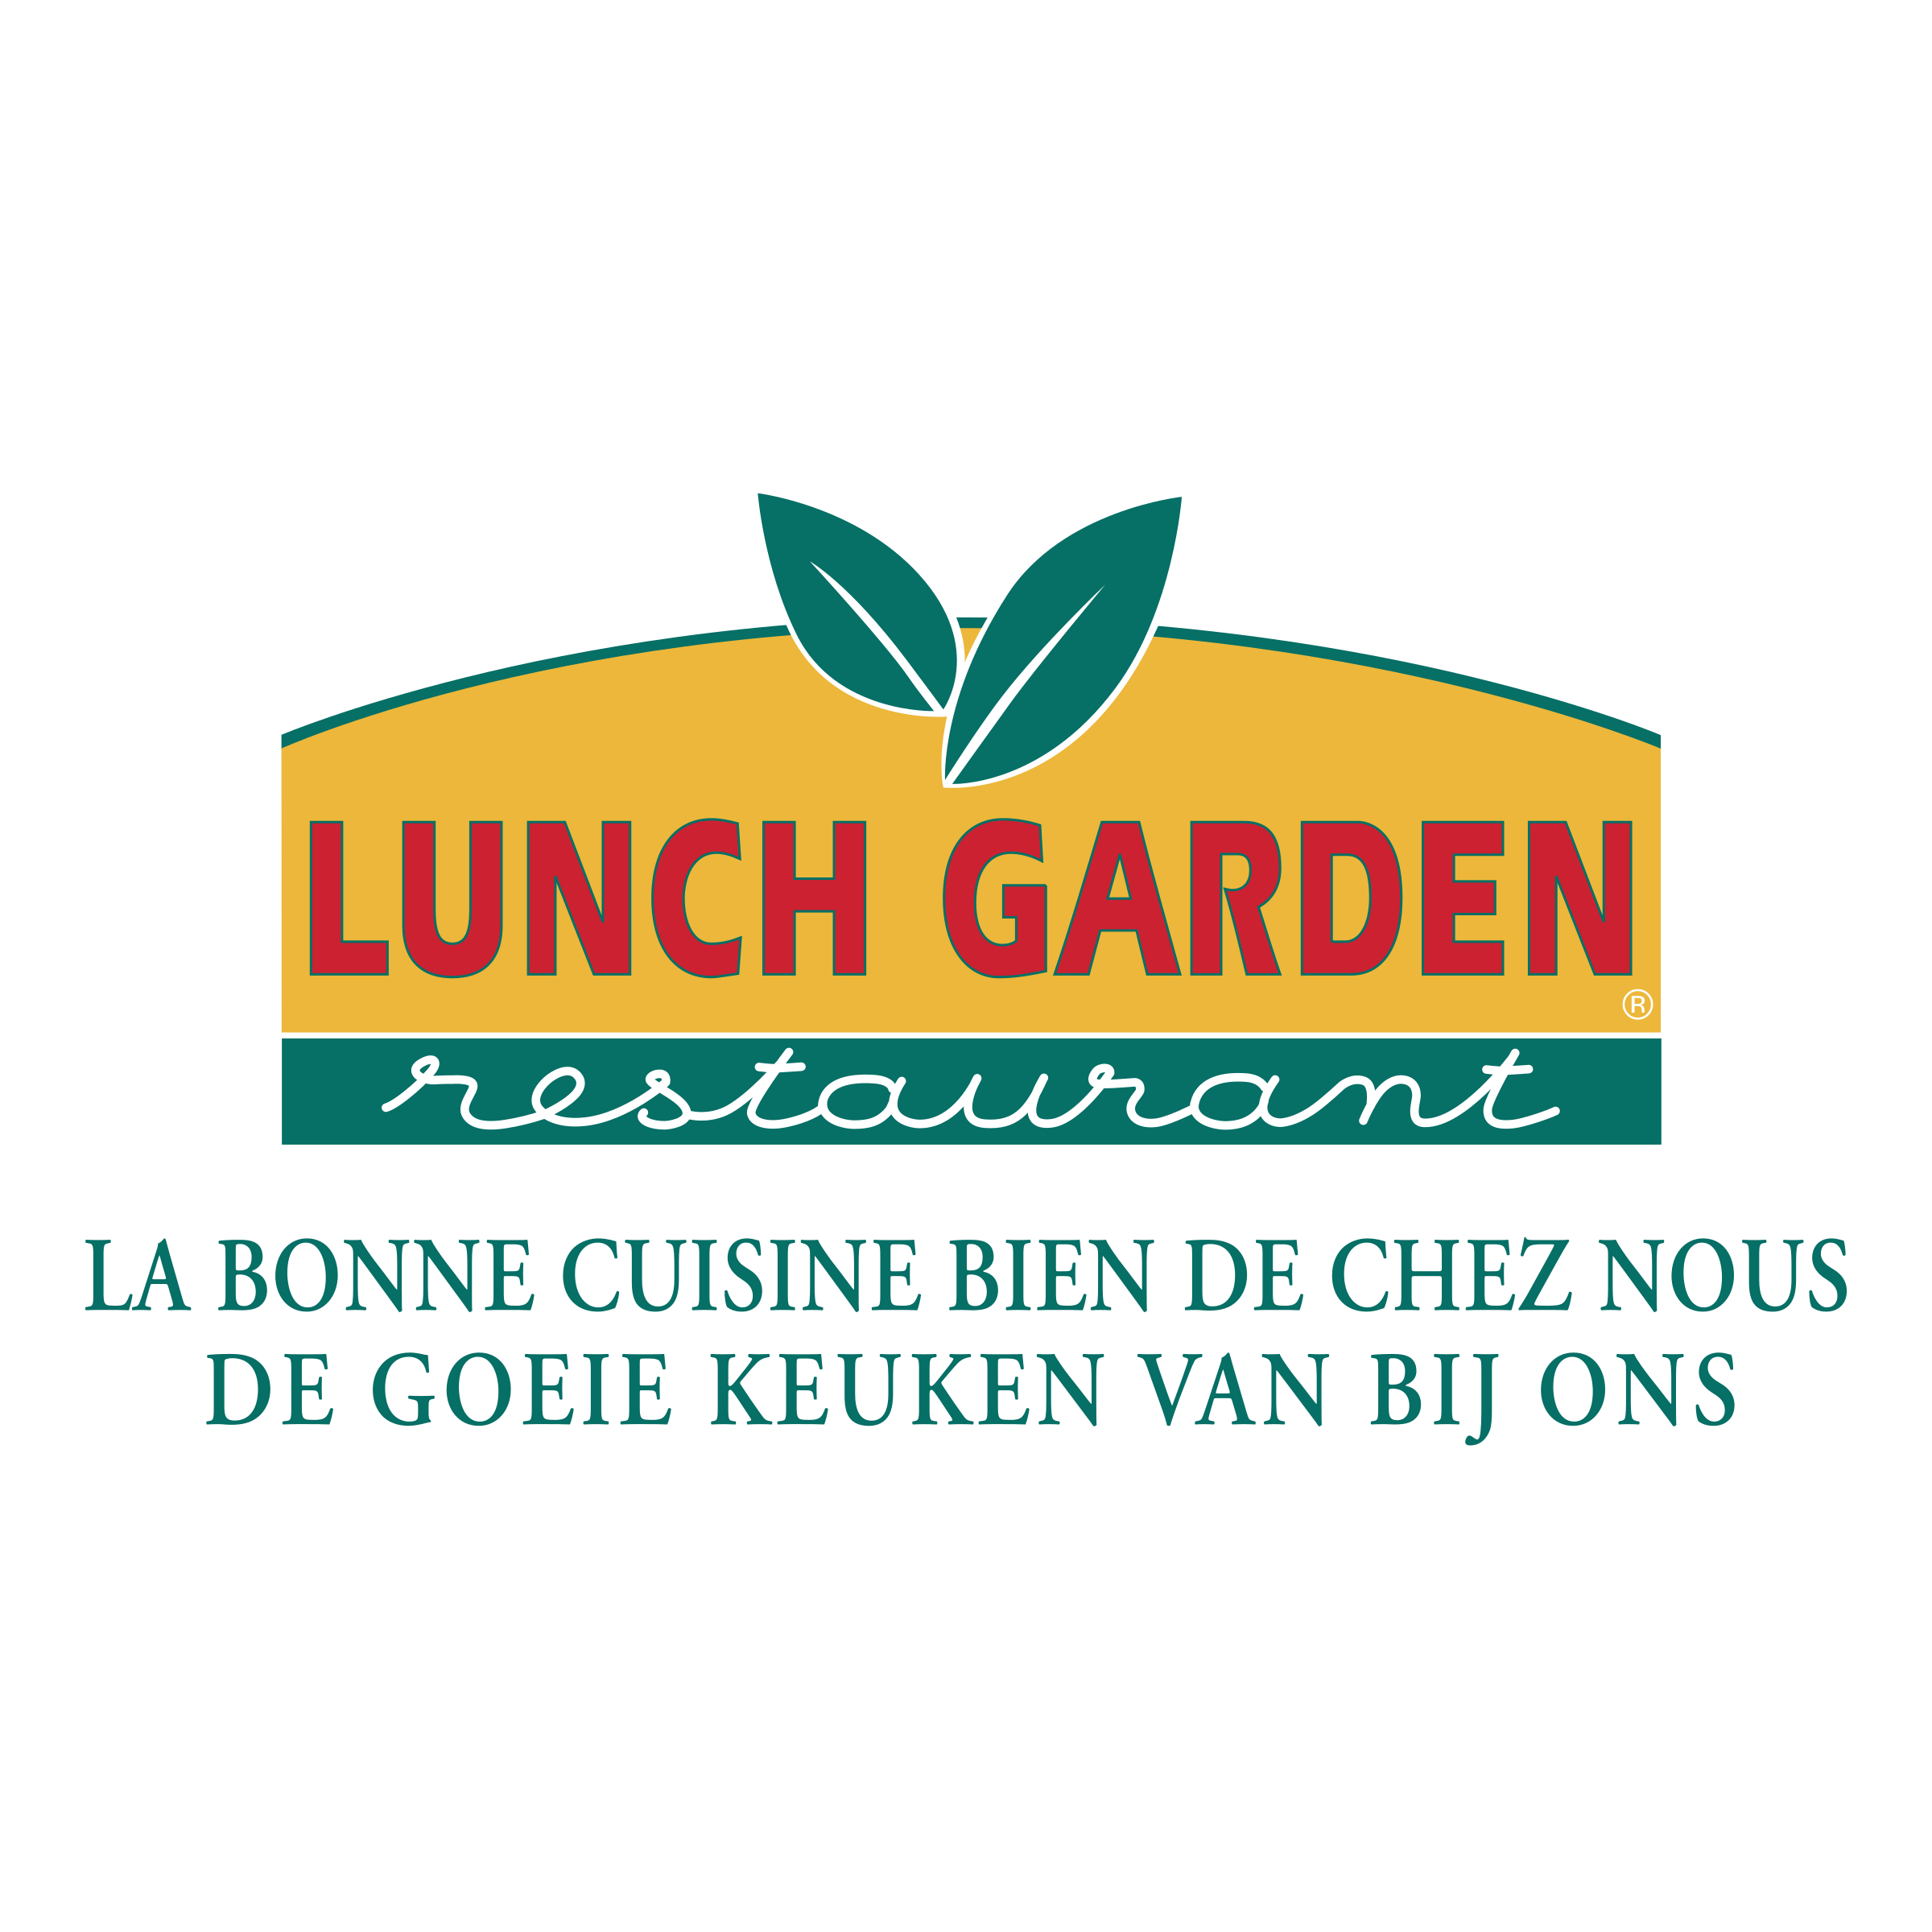 Garden vector png. Lunch logo transparent svg